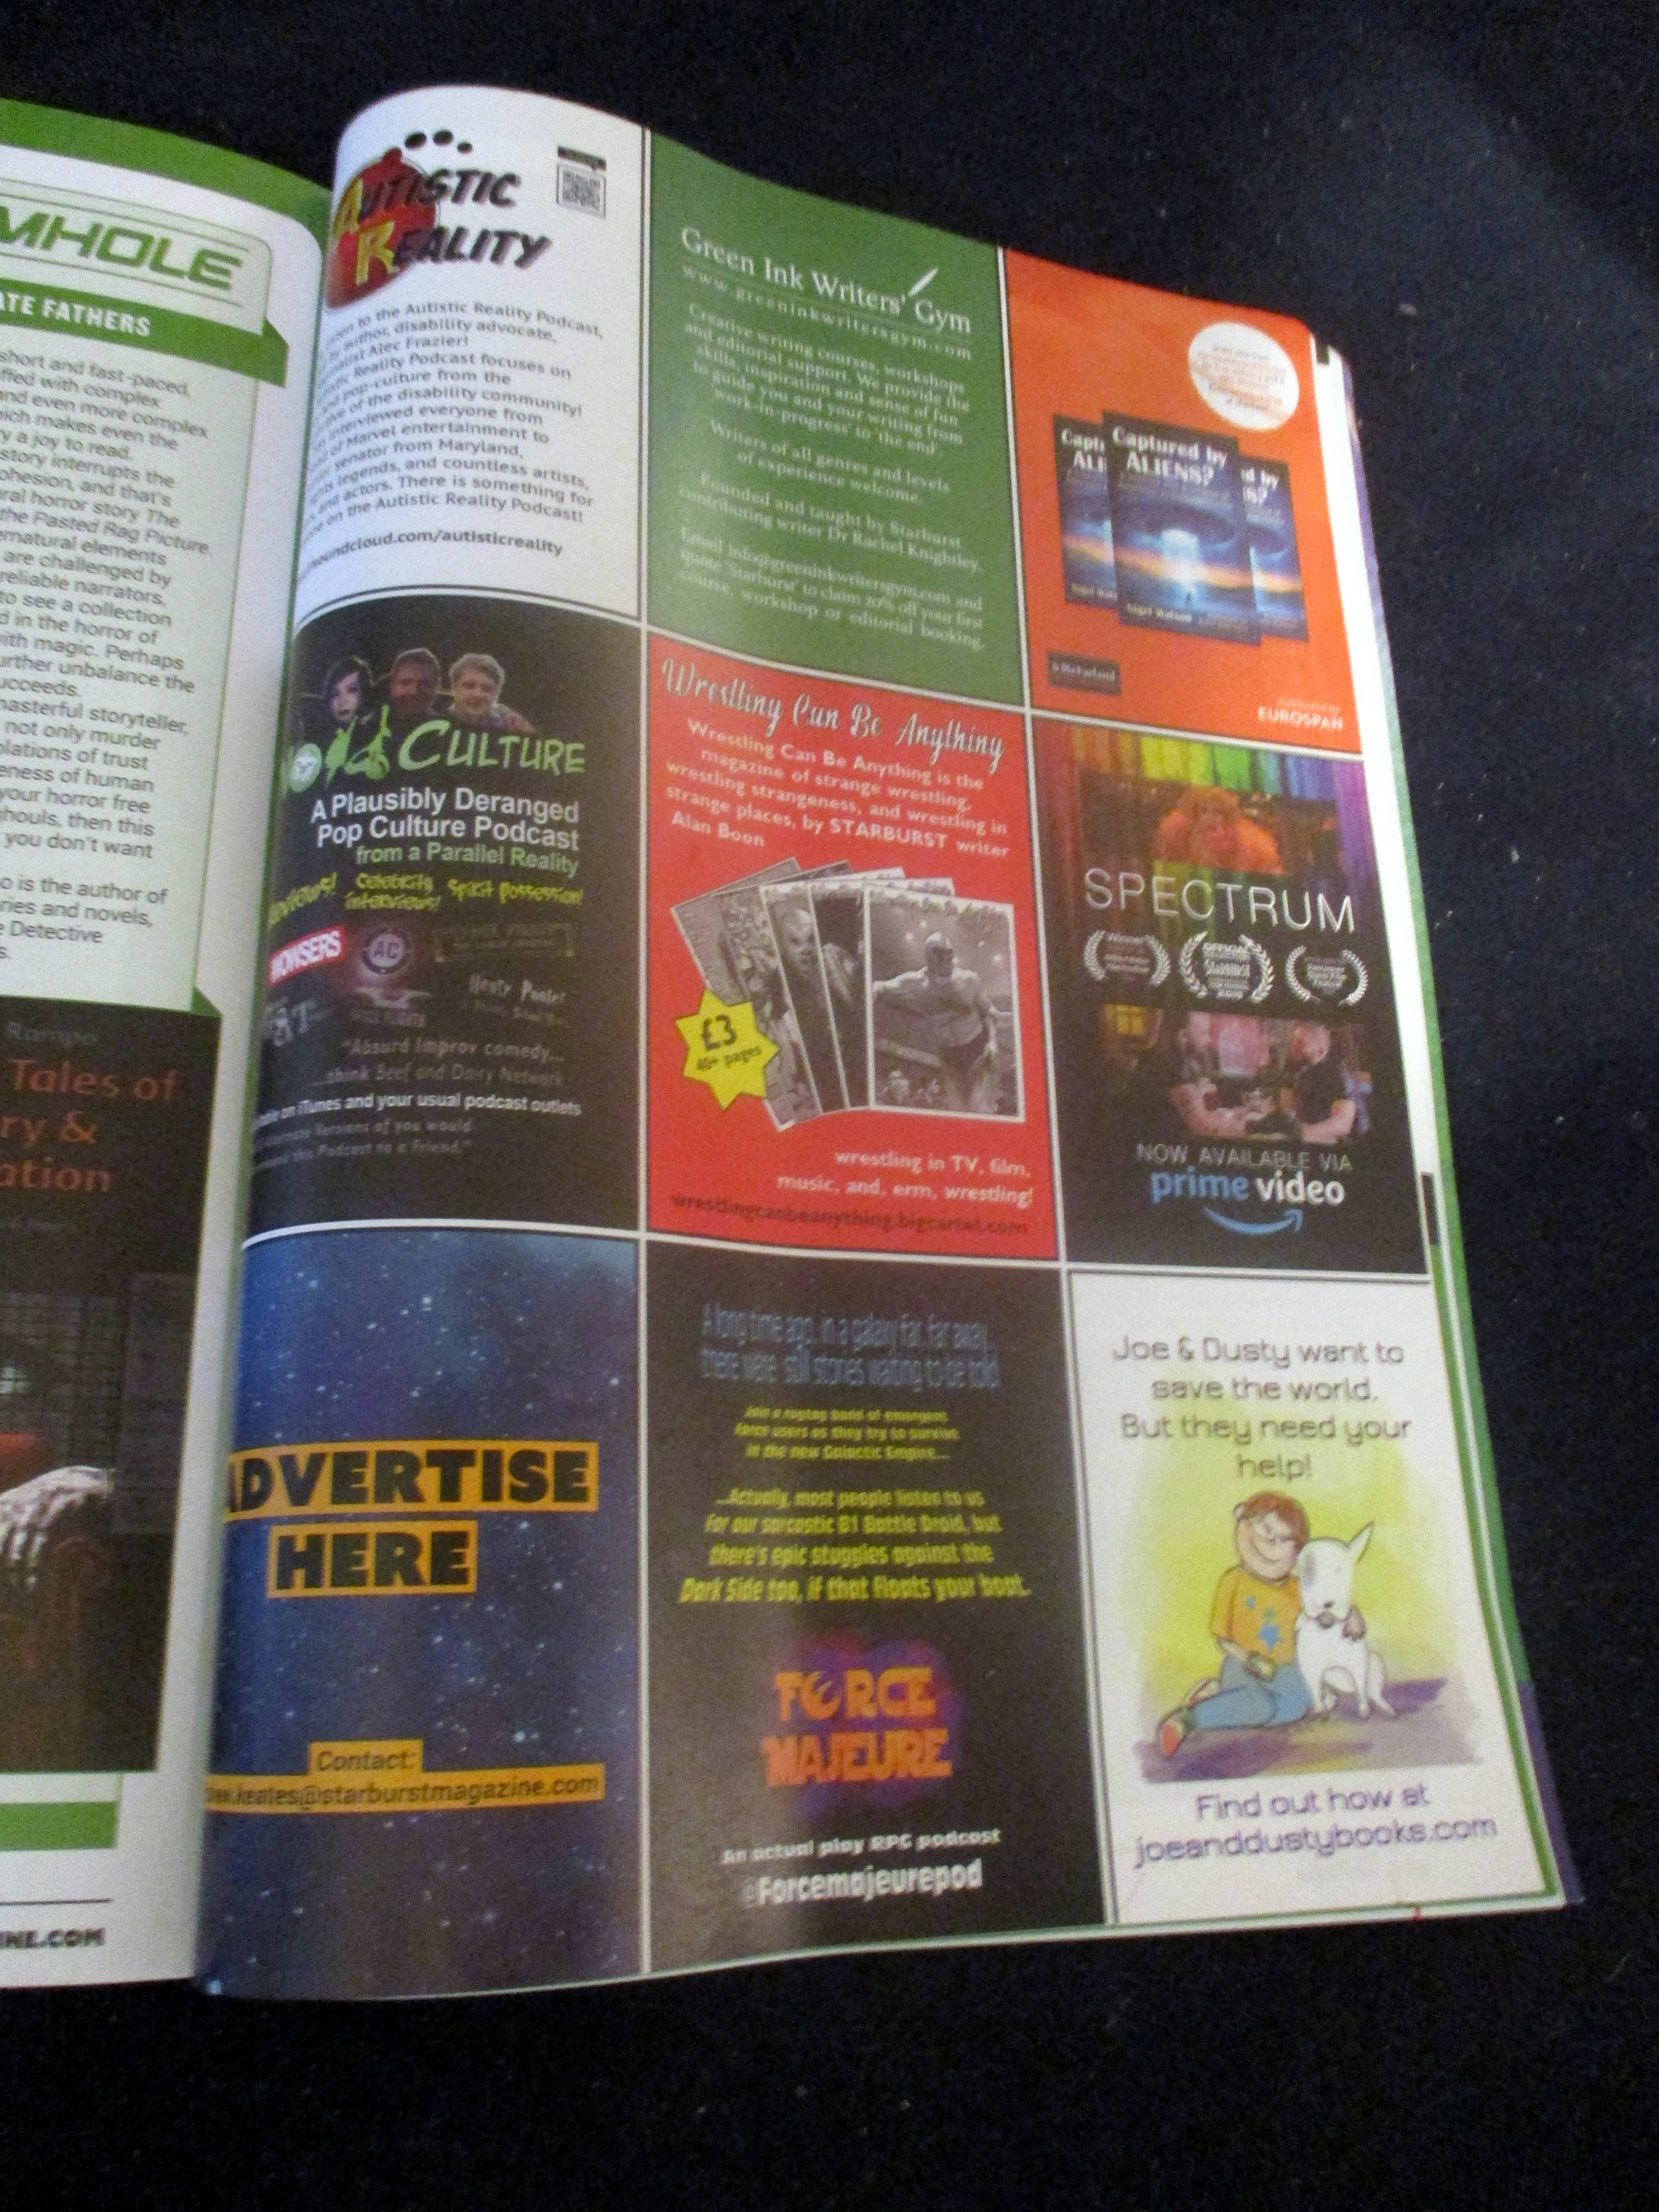 Page with Advertisement for Autistic Reality Podcast in Starburst Magazine #475: The Mandalorian Collectors¿ Edition at The Wombatorium 2.0: A Capital Idea